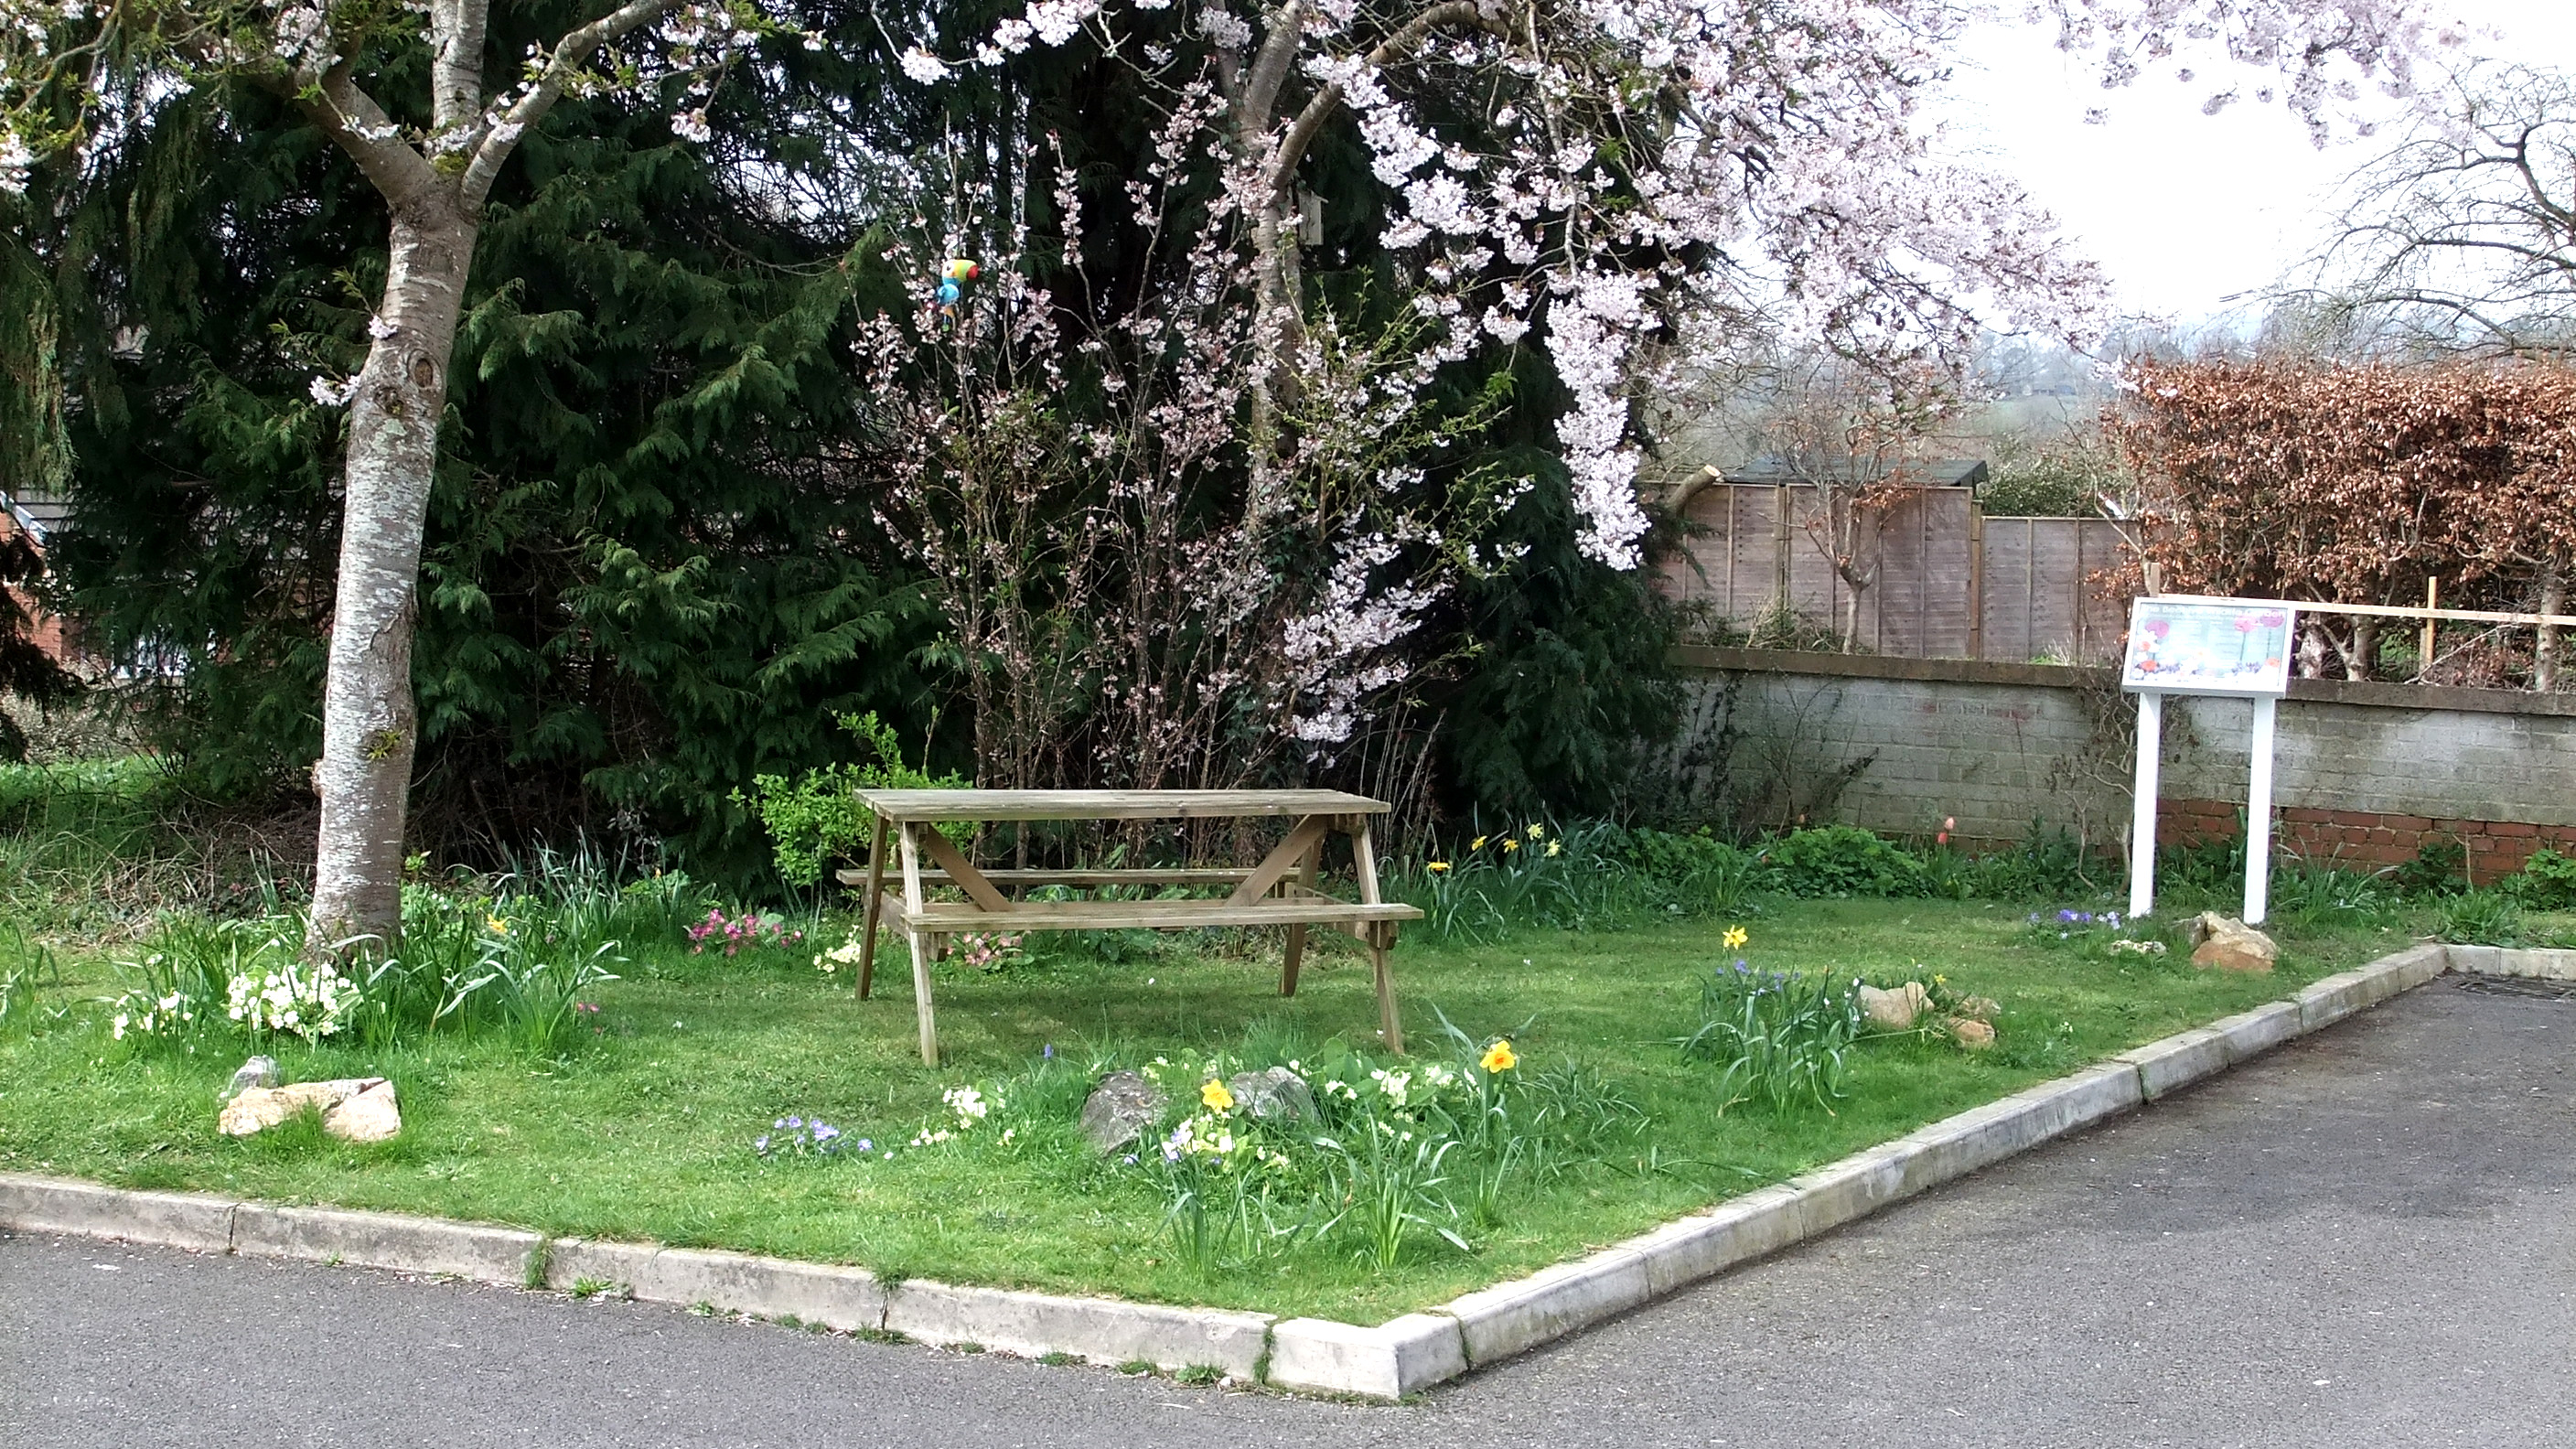 Wildlife garden at the Beehive in Honiton, including wildflowers, picnic bench and display board